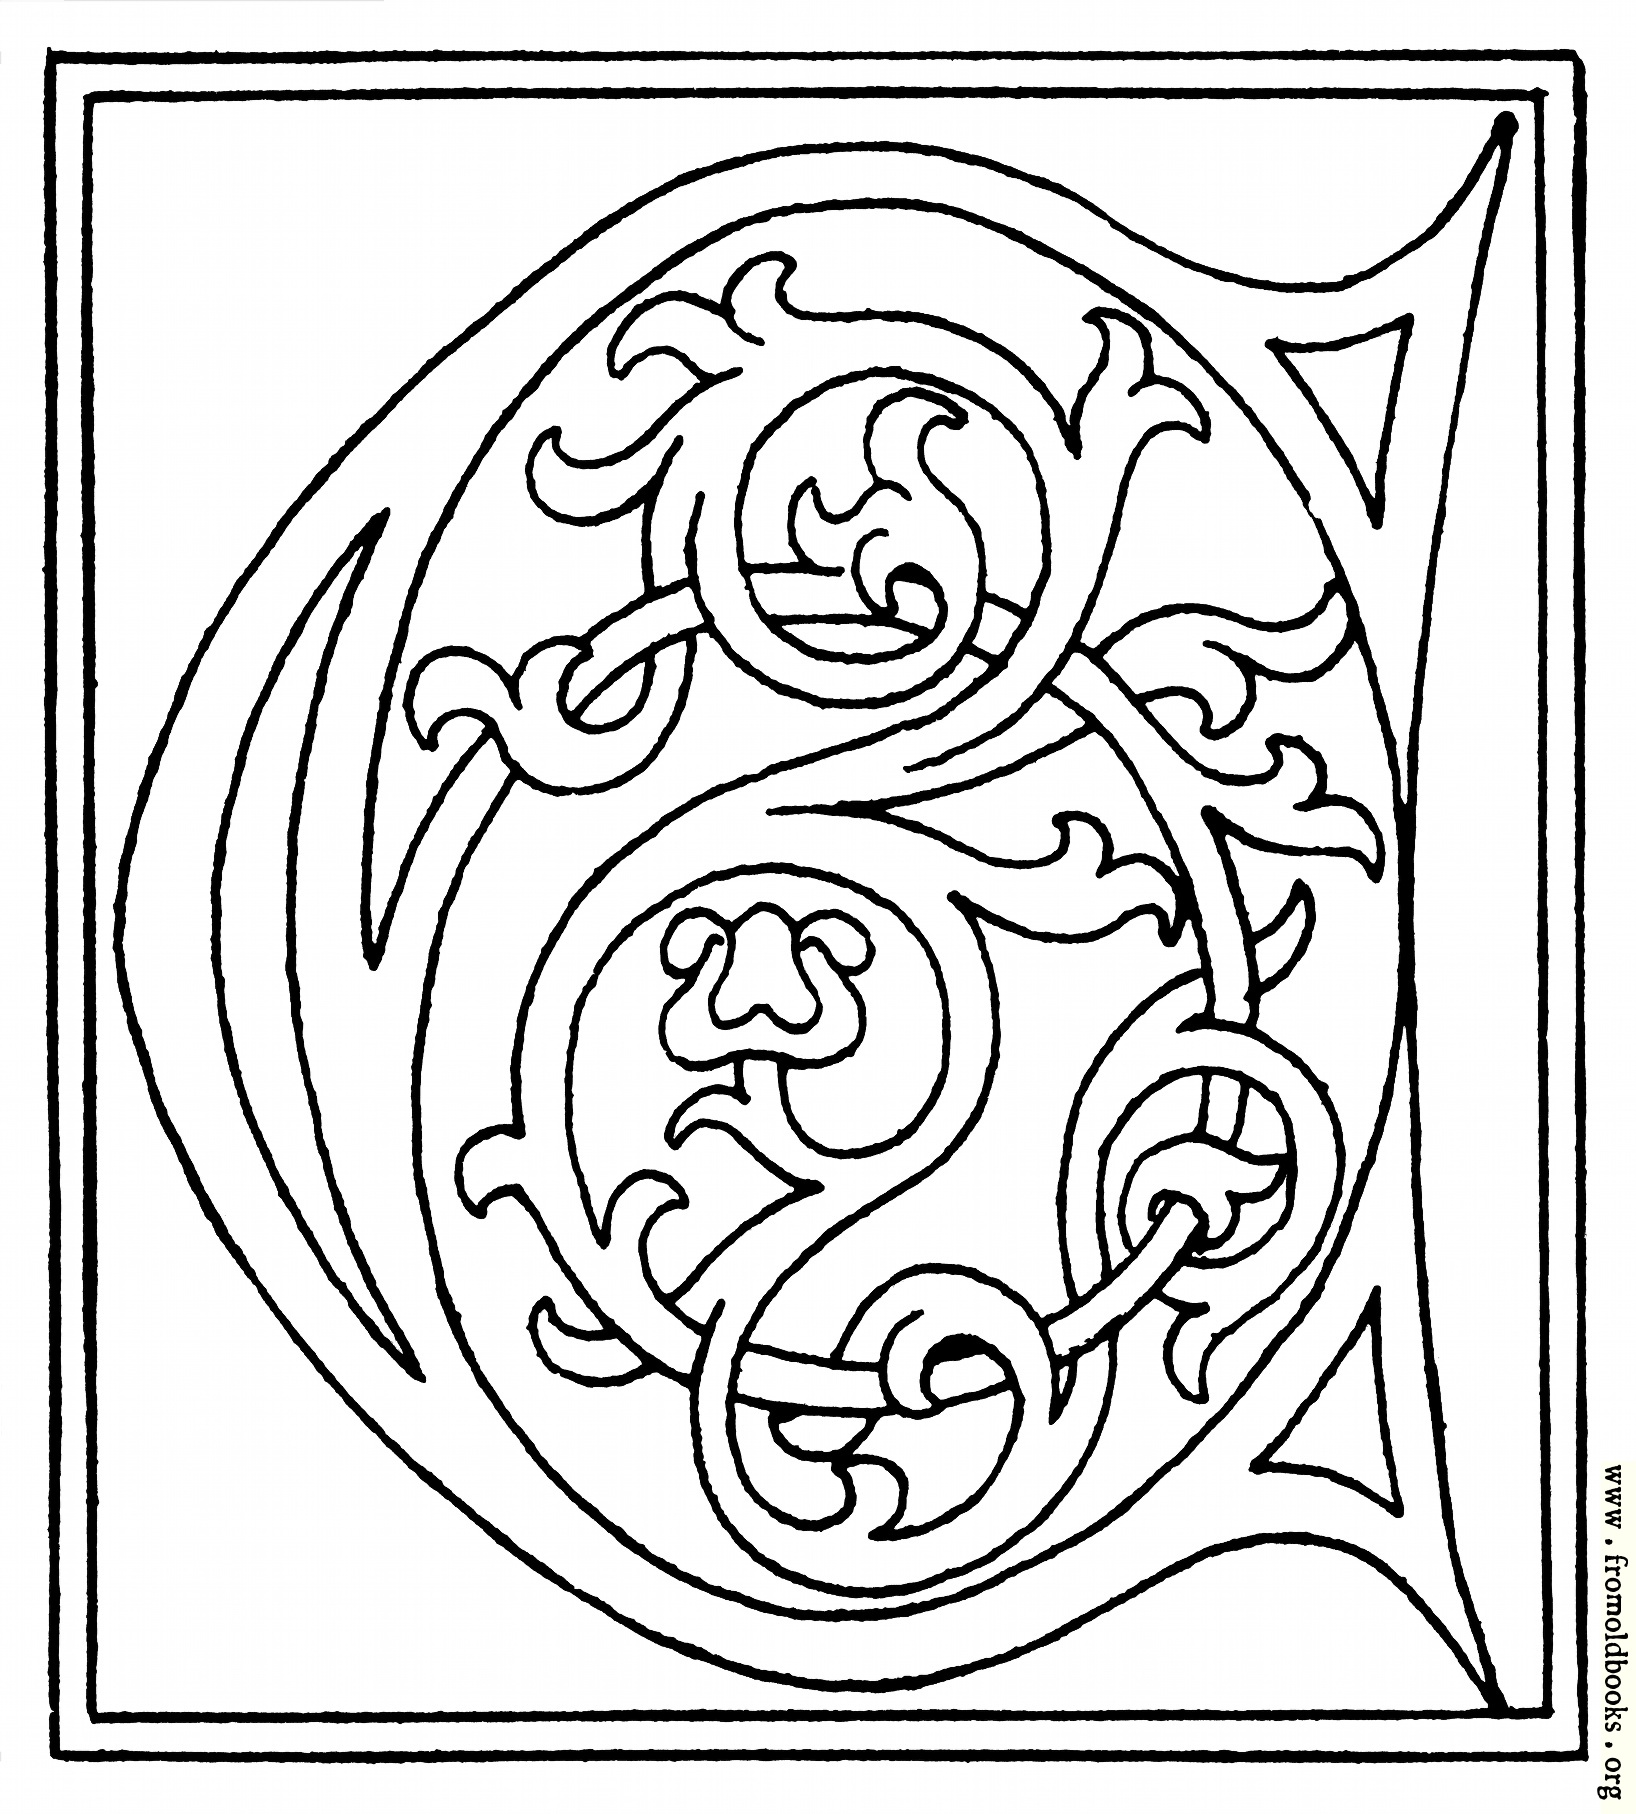 Clipart Initial Letter C From Late 15th Century Printed Book